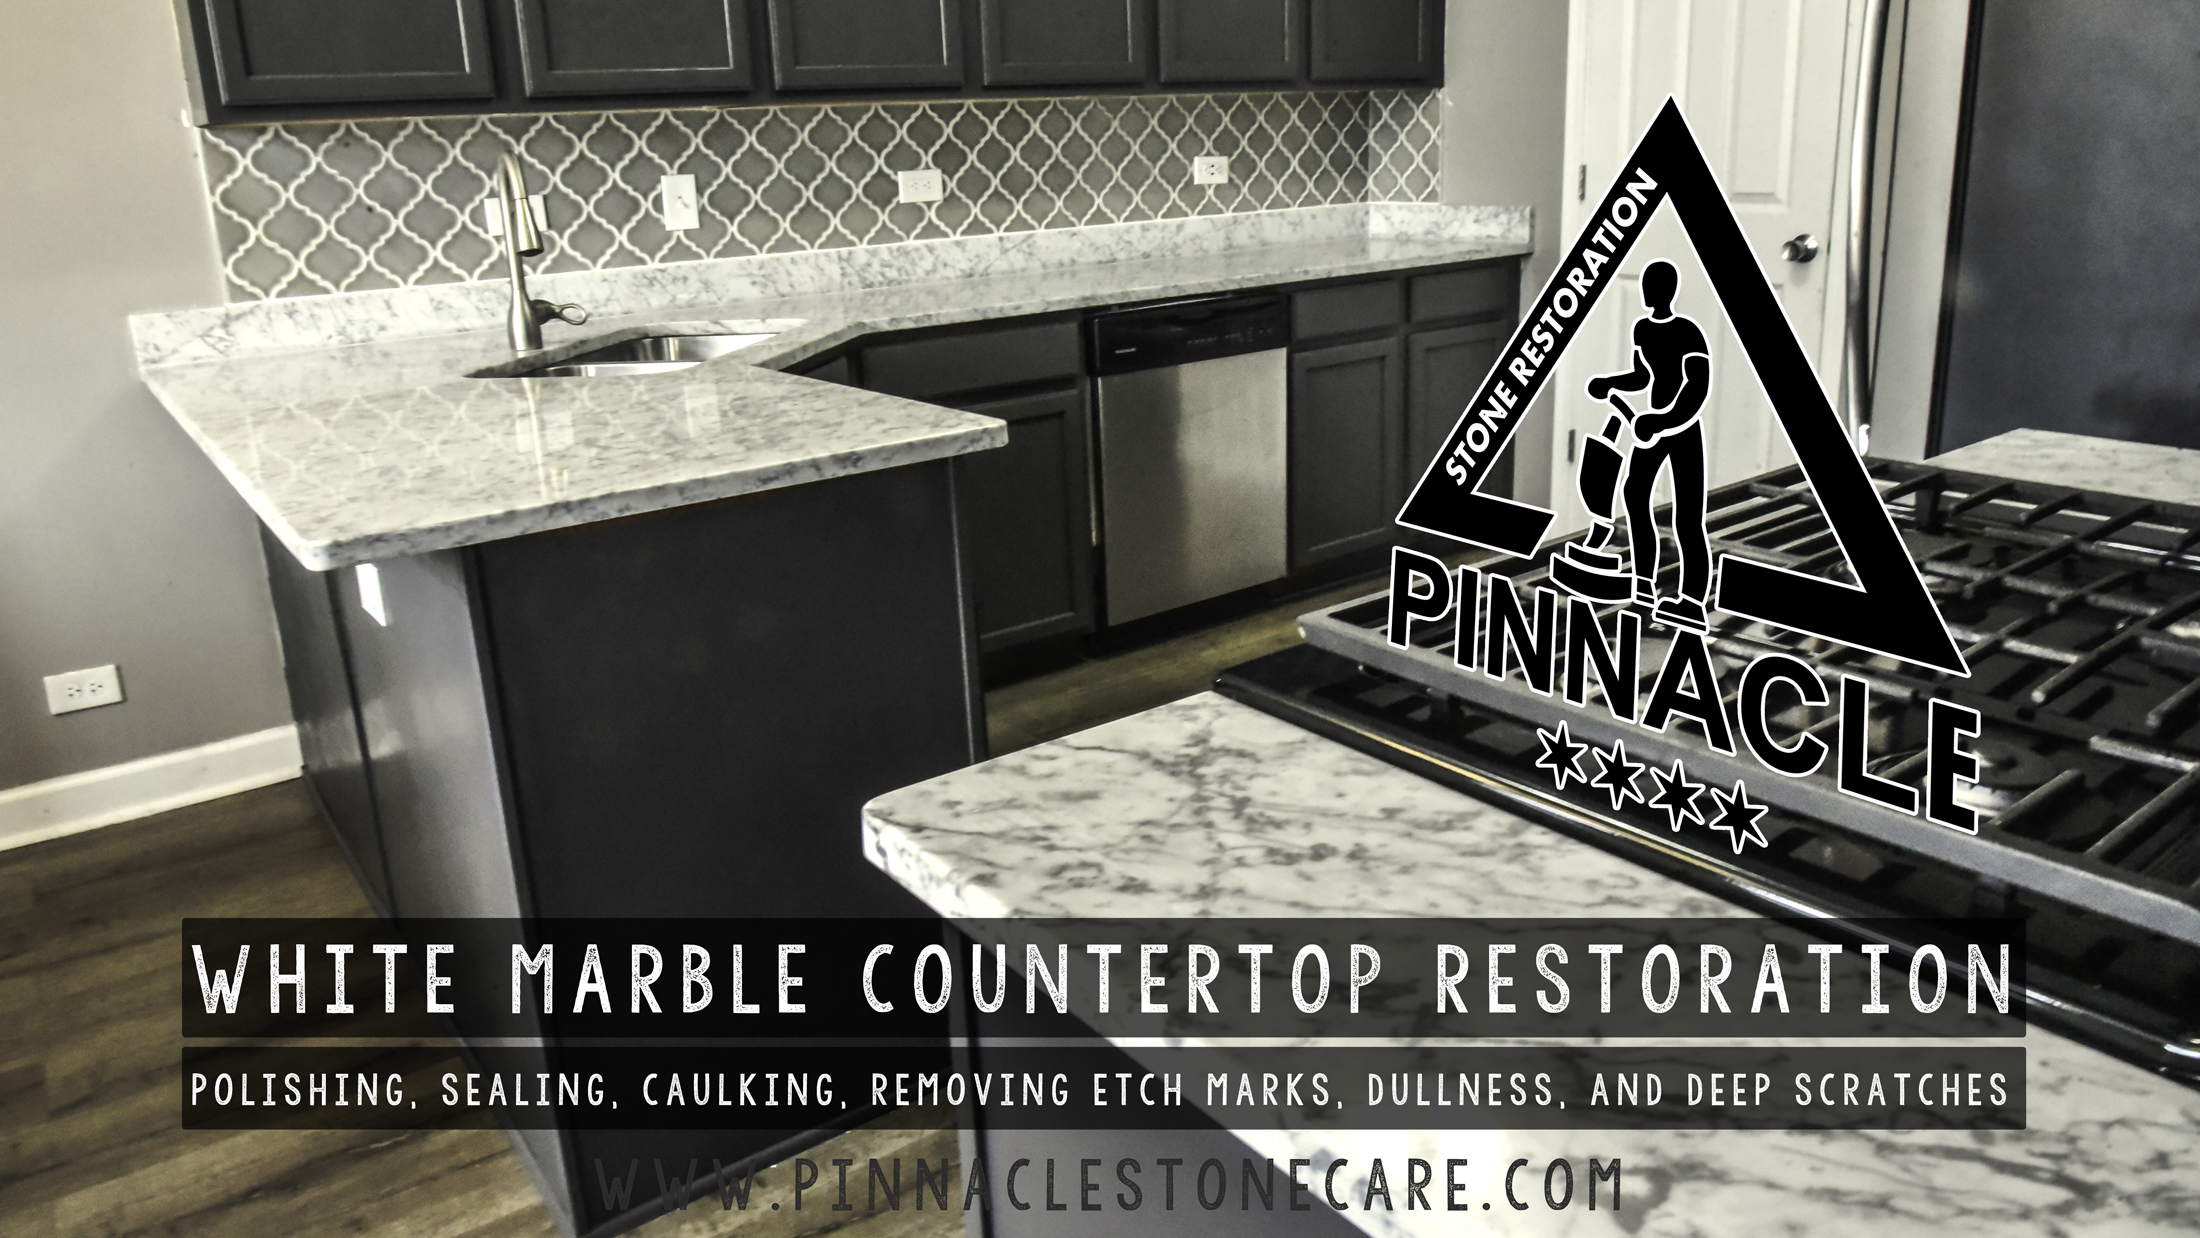 White Marble Countertop Restoration